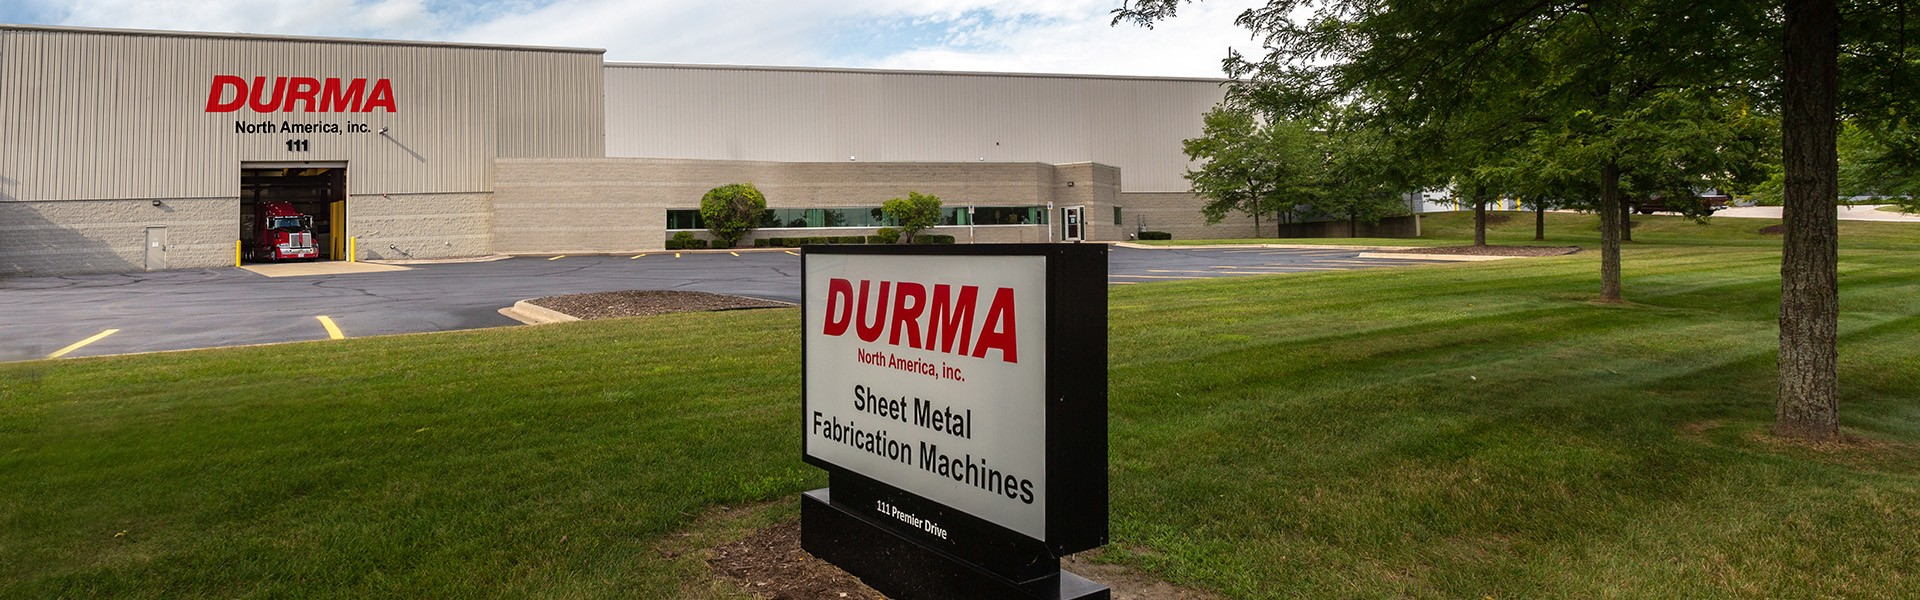 Durma North America office